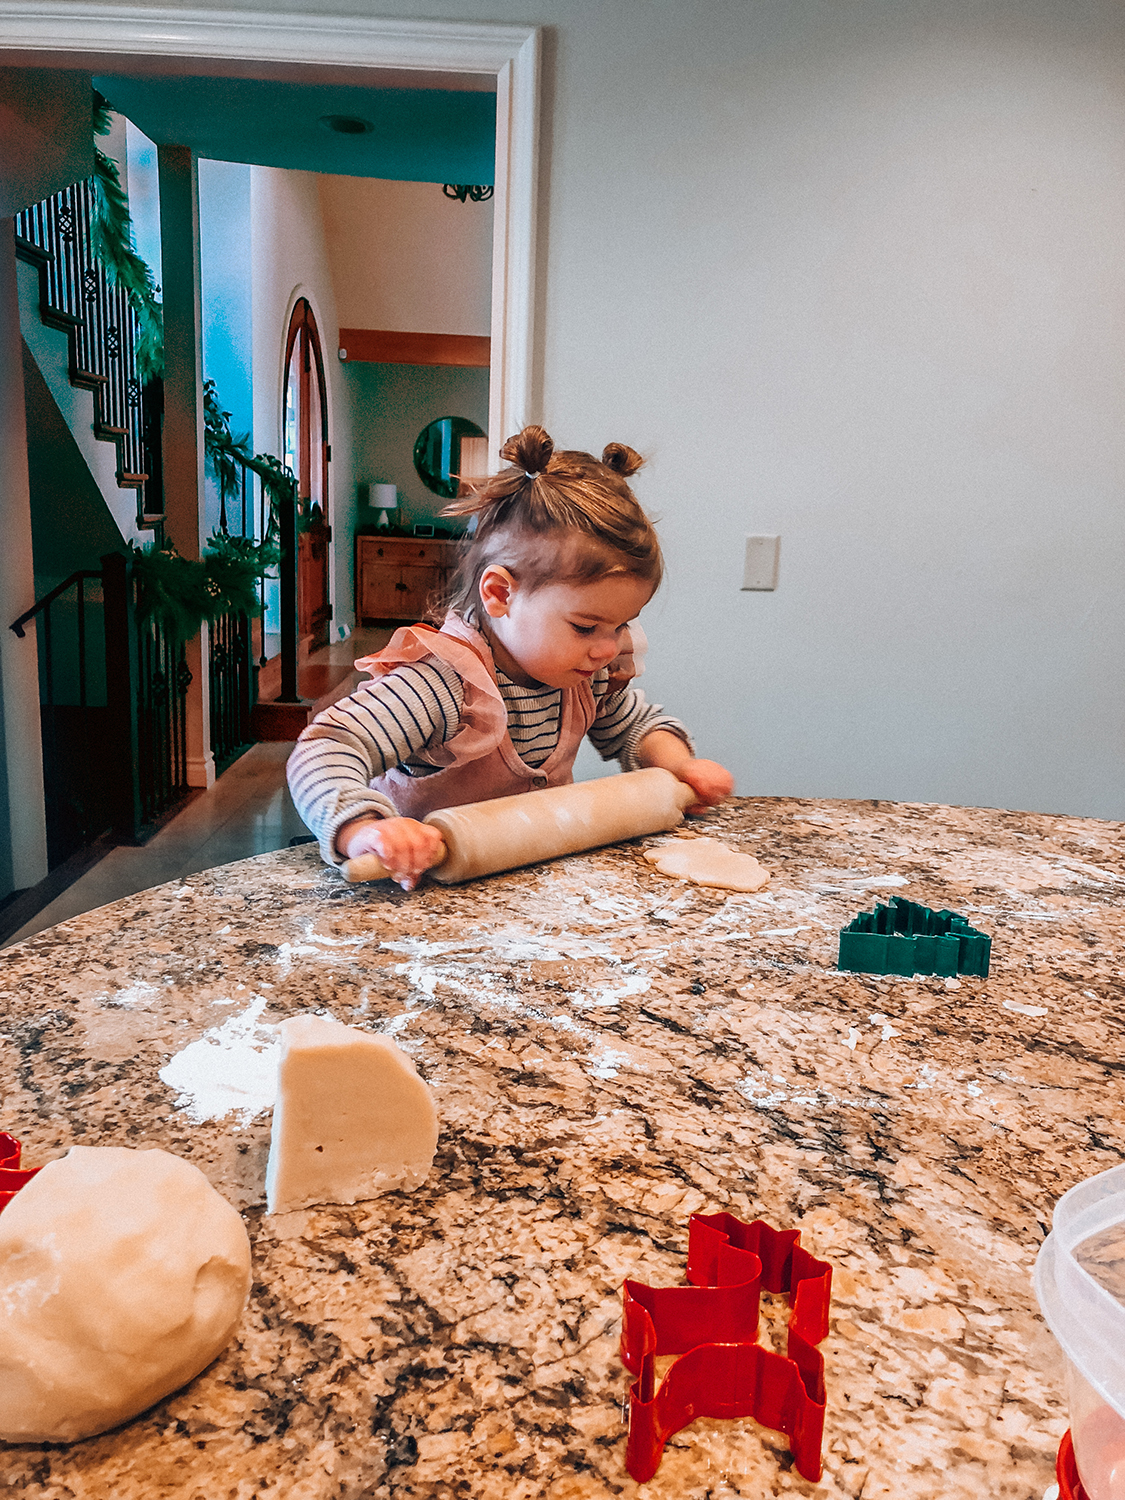 B loved making cookies with Lolly the week of Christmas! We broke in our kitchen and oven with sugar cookies - the best way to break in any kitchen I think.